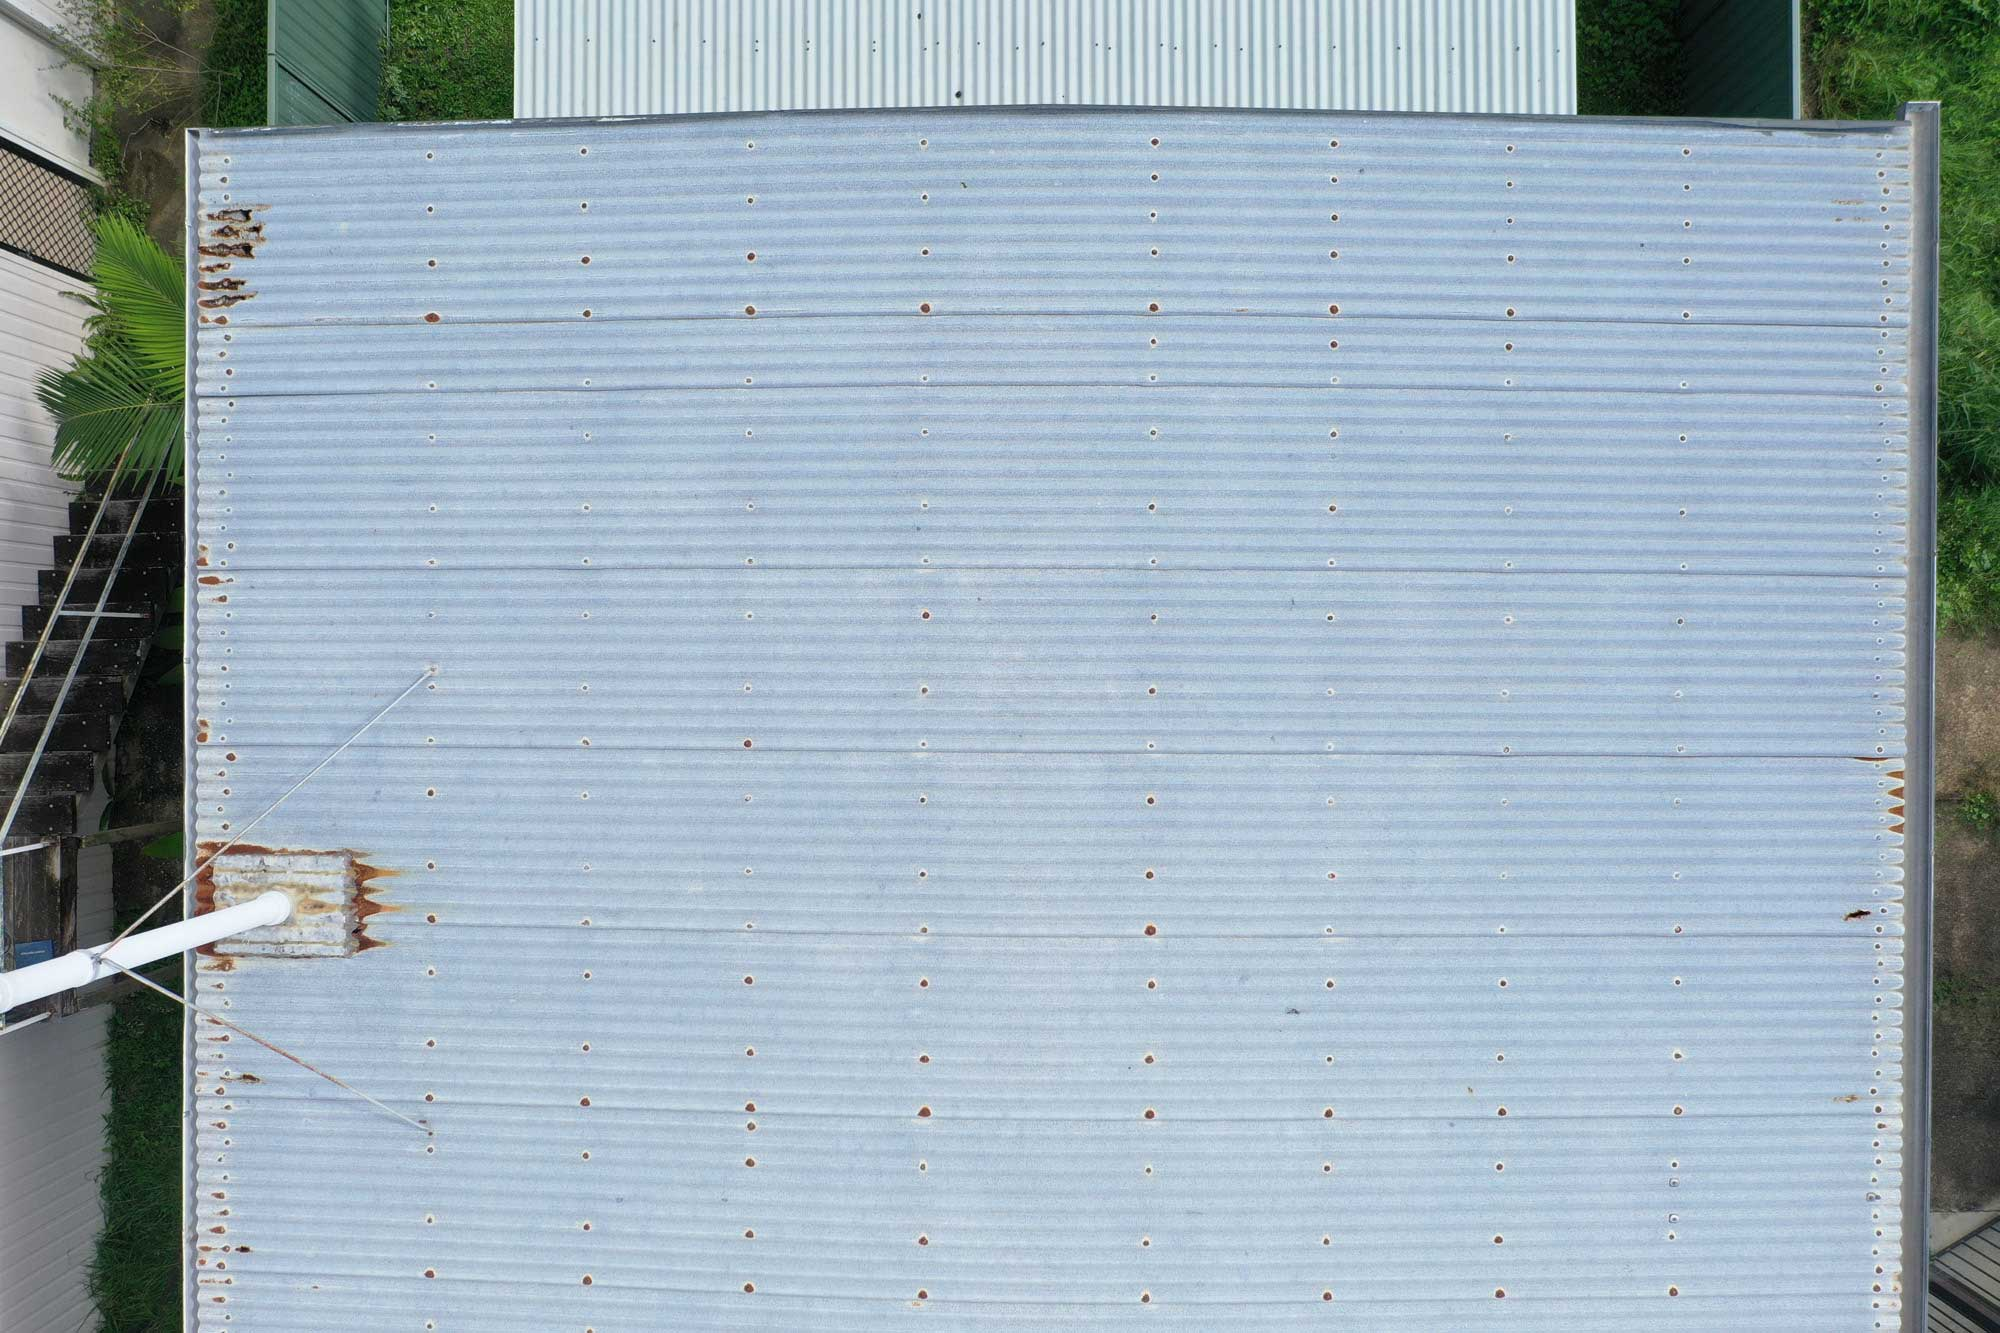 Drone photograph of rust on a roof at Deception Bay